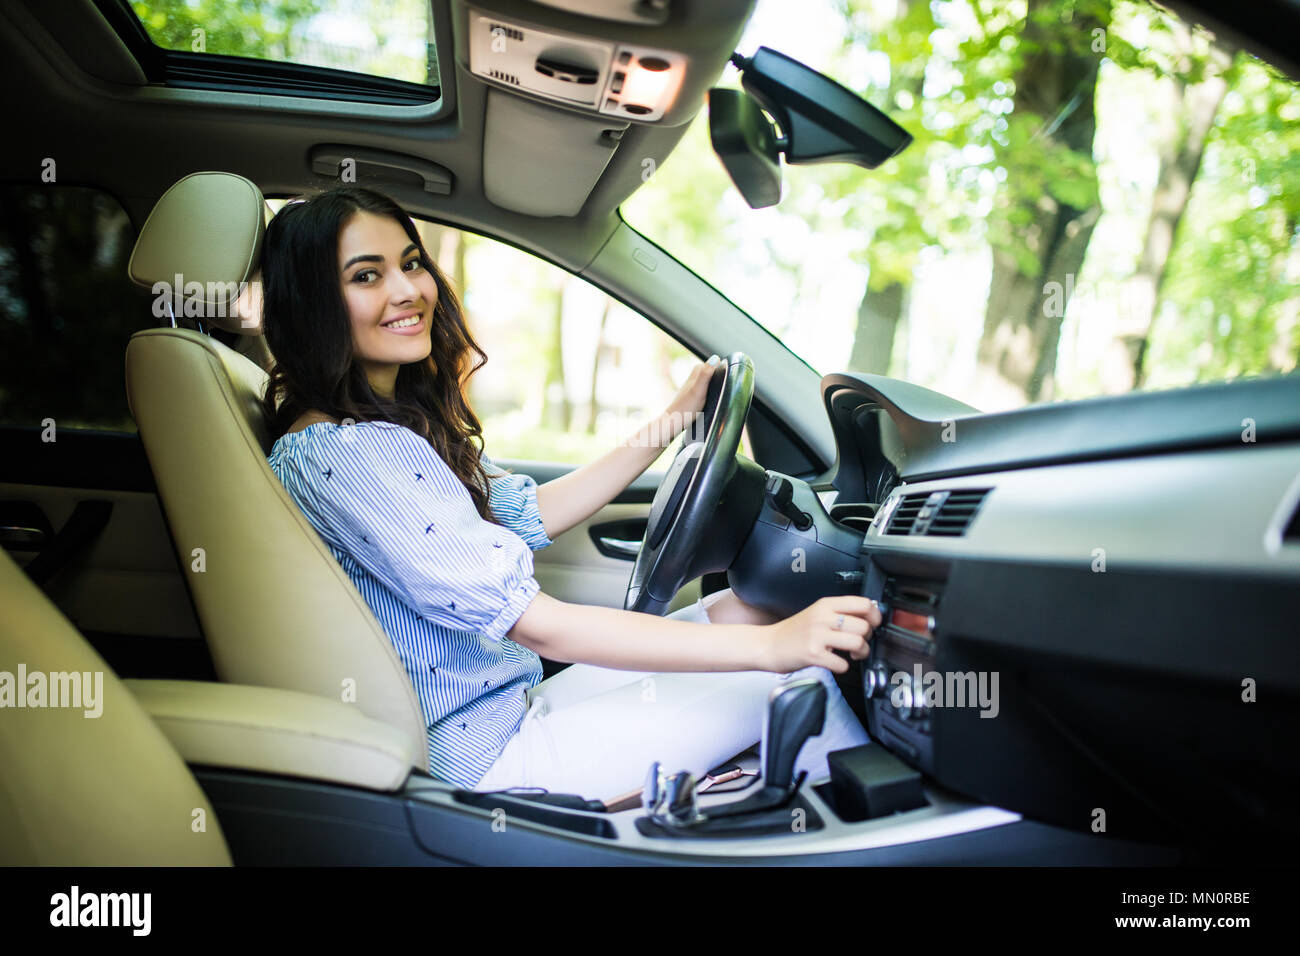 Lady Driver High Resolution Stock Photography And Images Alamy